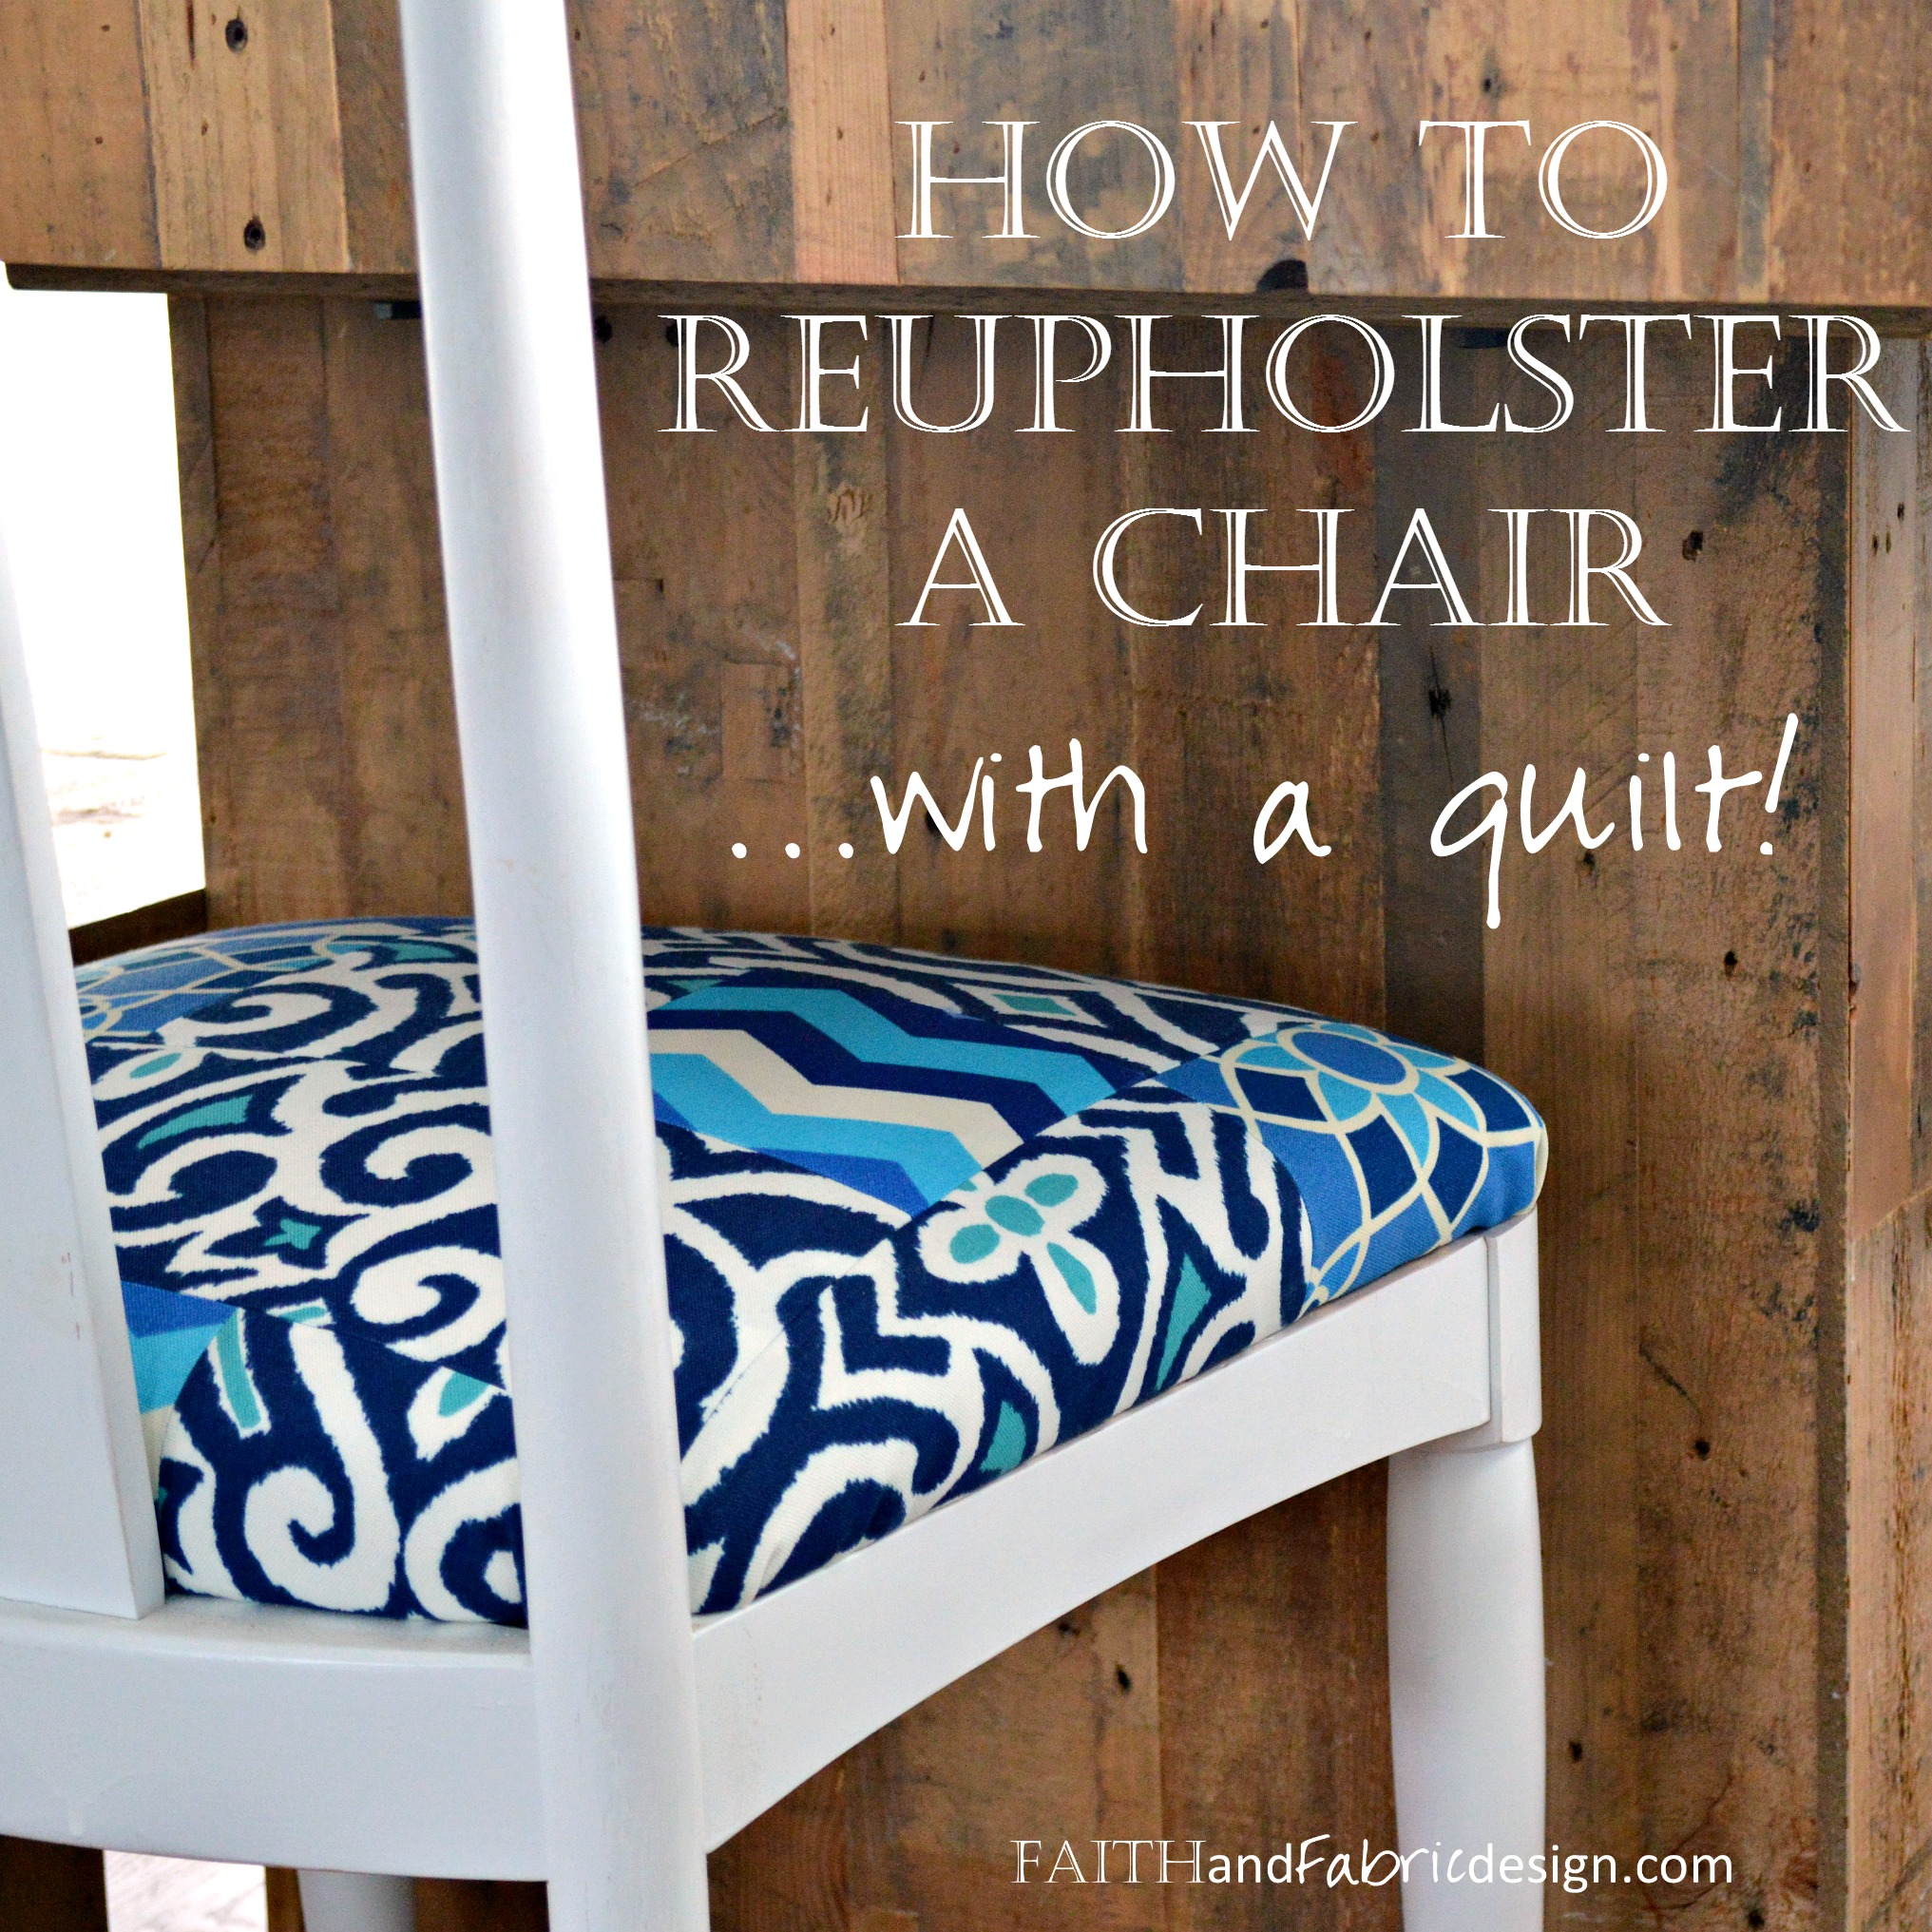 Faith And Fabric   How To Reupholster A Chair With A Quilt 3